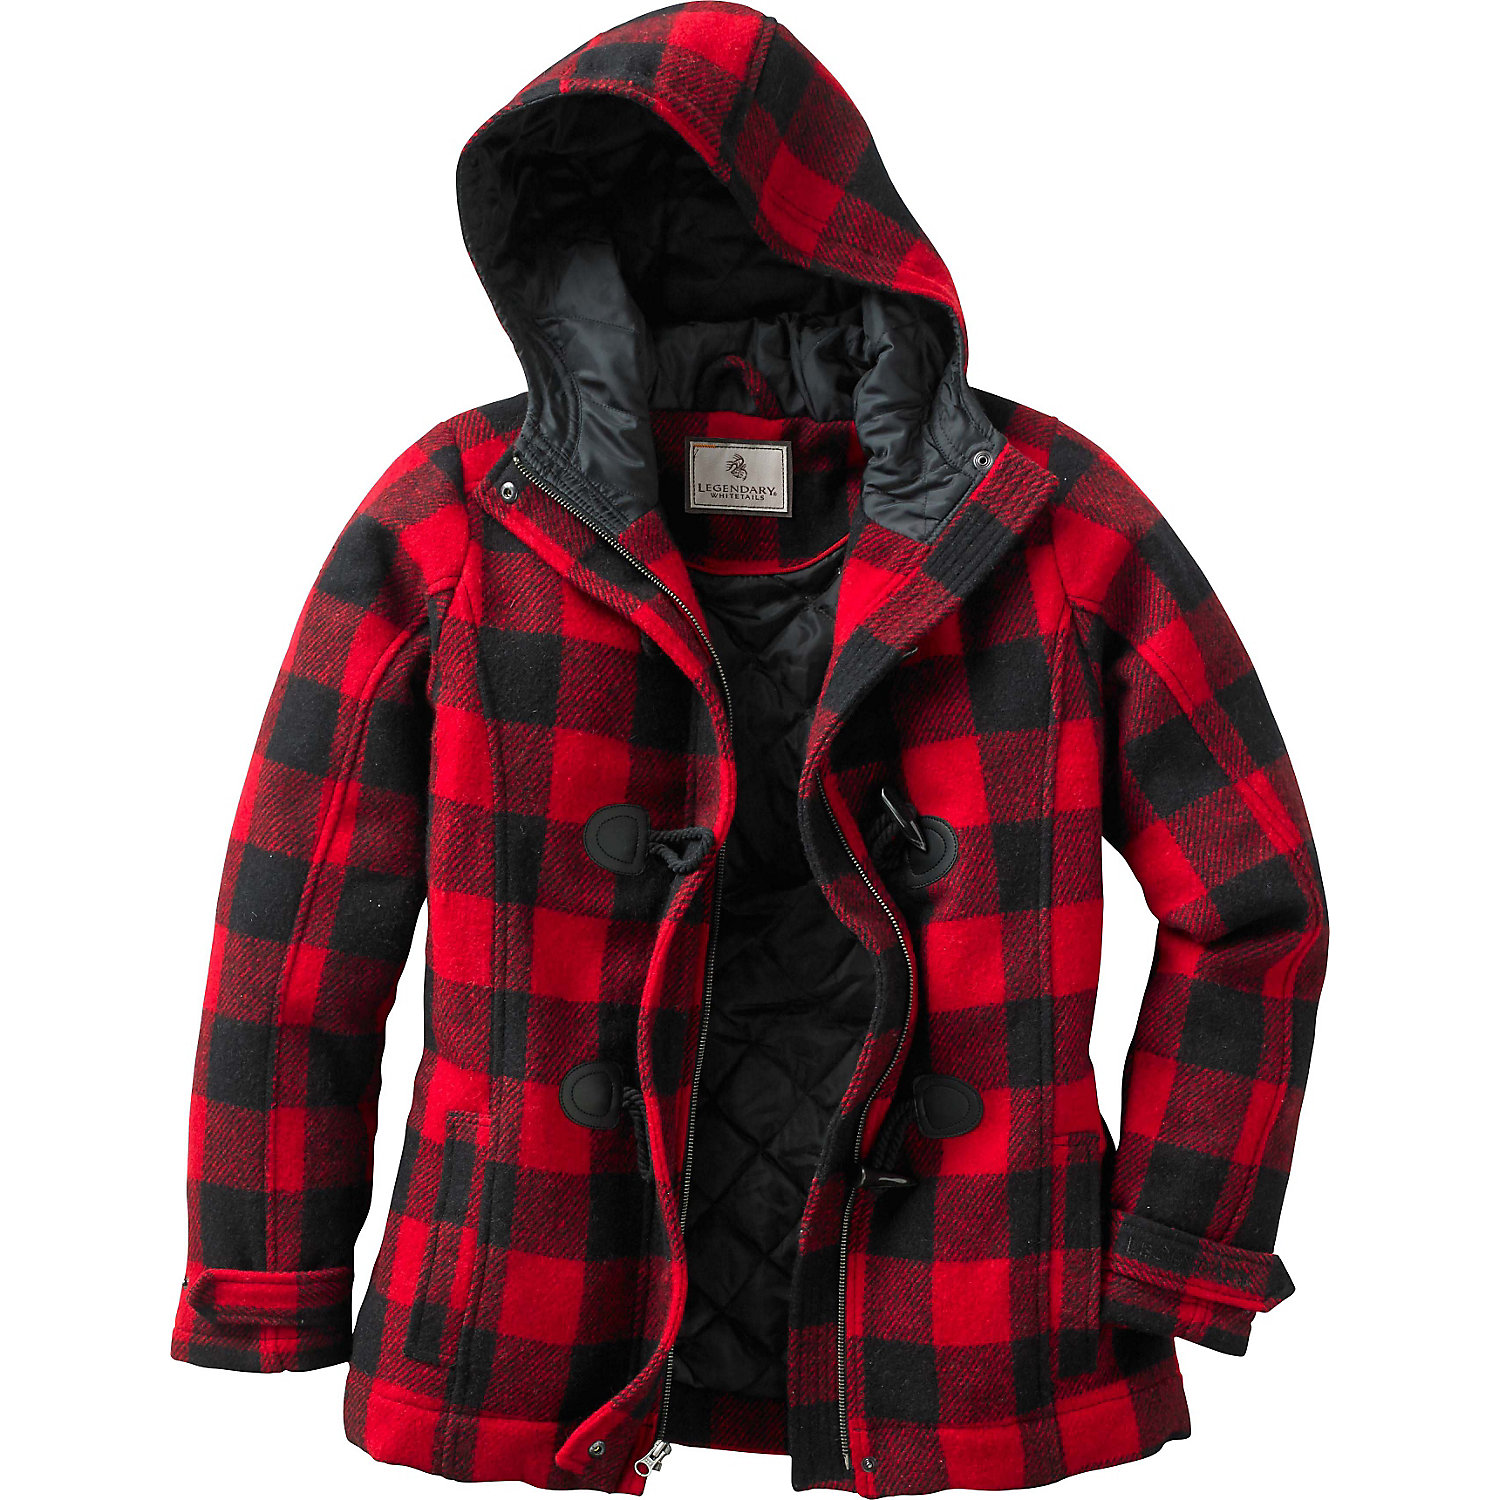 Plaid Jacket. If you're looking to make a fashion statement without going overboard, a plaid jacket is a fitting choice. This pattern matches perfectly with solid colors and is ideal for everyone in the family.